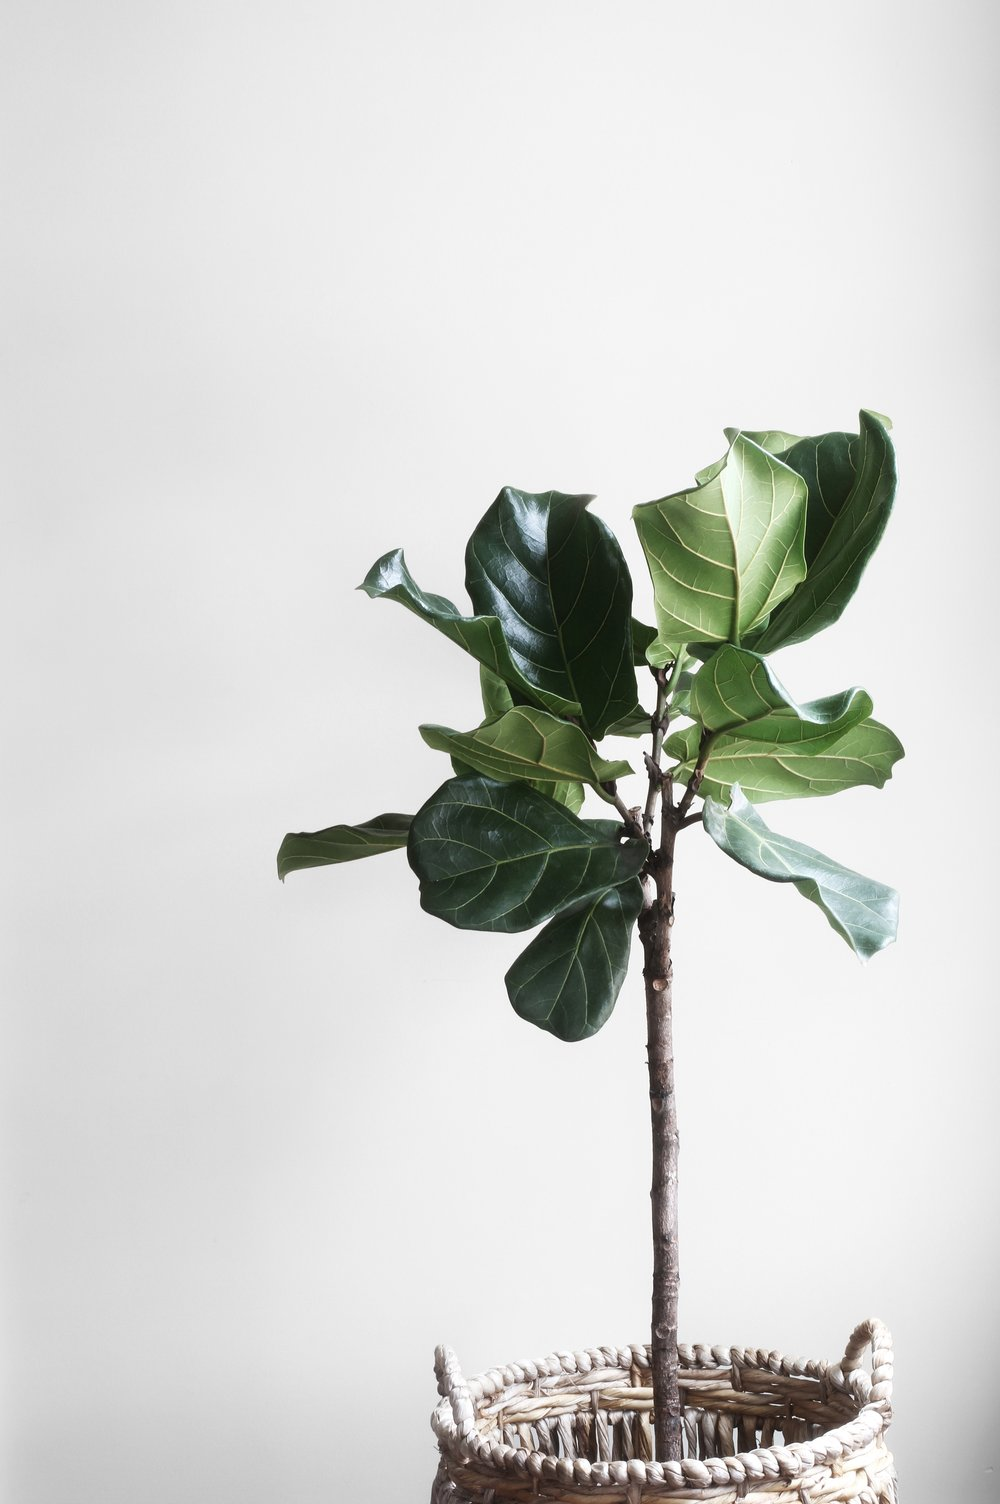 There's a diverse array of indoor plants  - Here are the common indoor plants you're most likely to come across at your local plant shop.